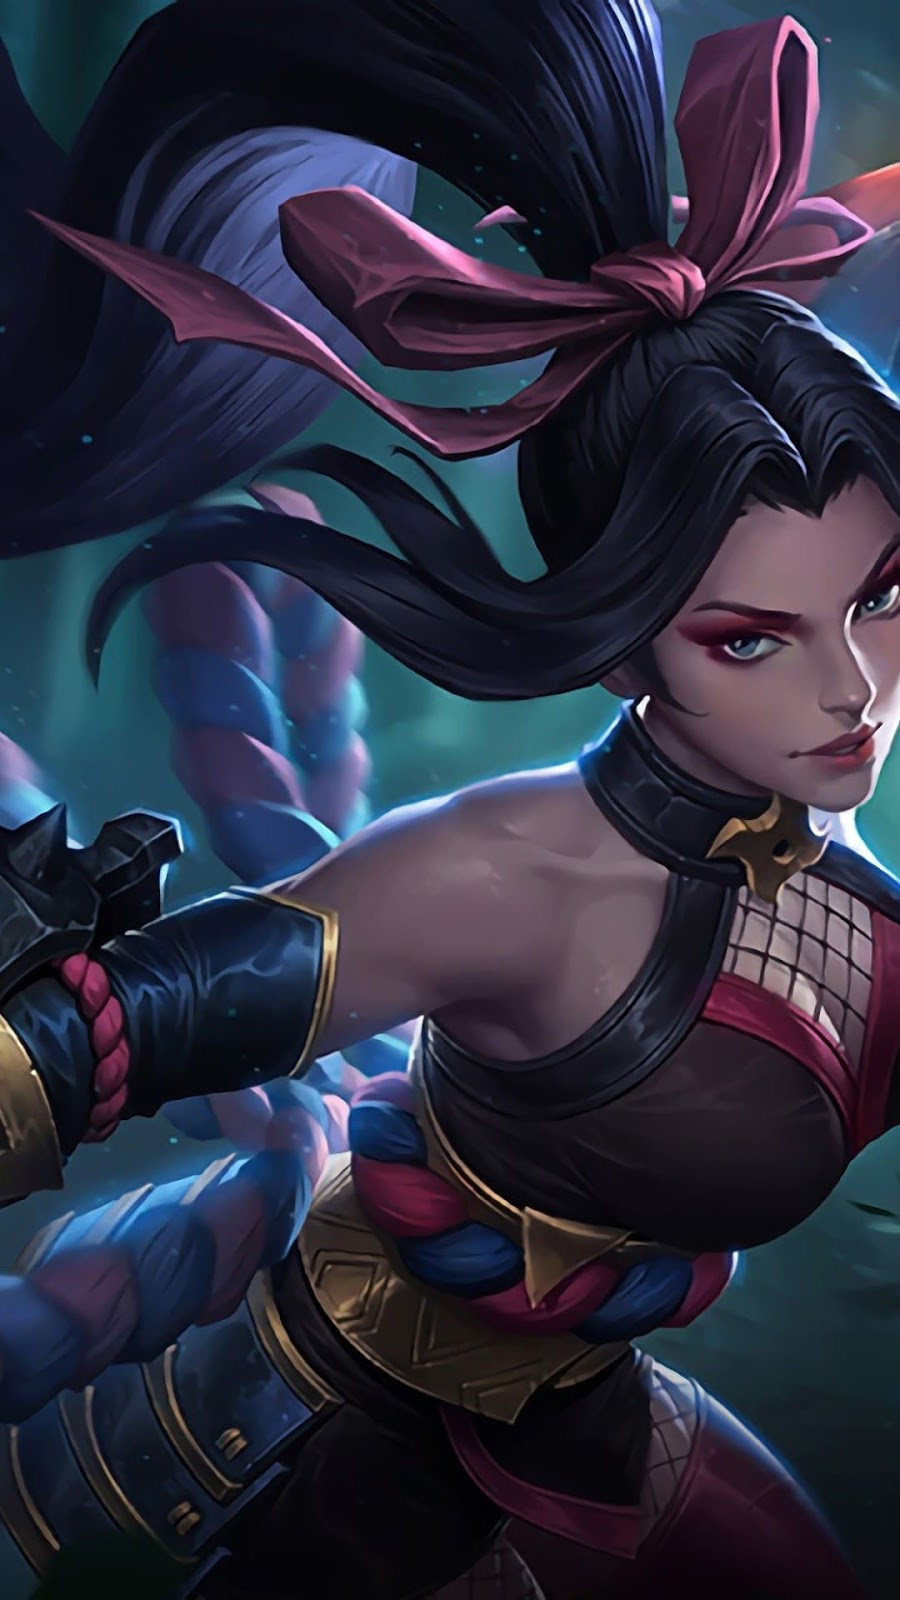 Wallpaper Hanabi Scarlet Flower Skin Mobile Legends HD for Android and iOS